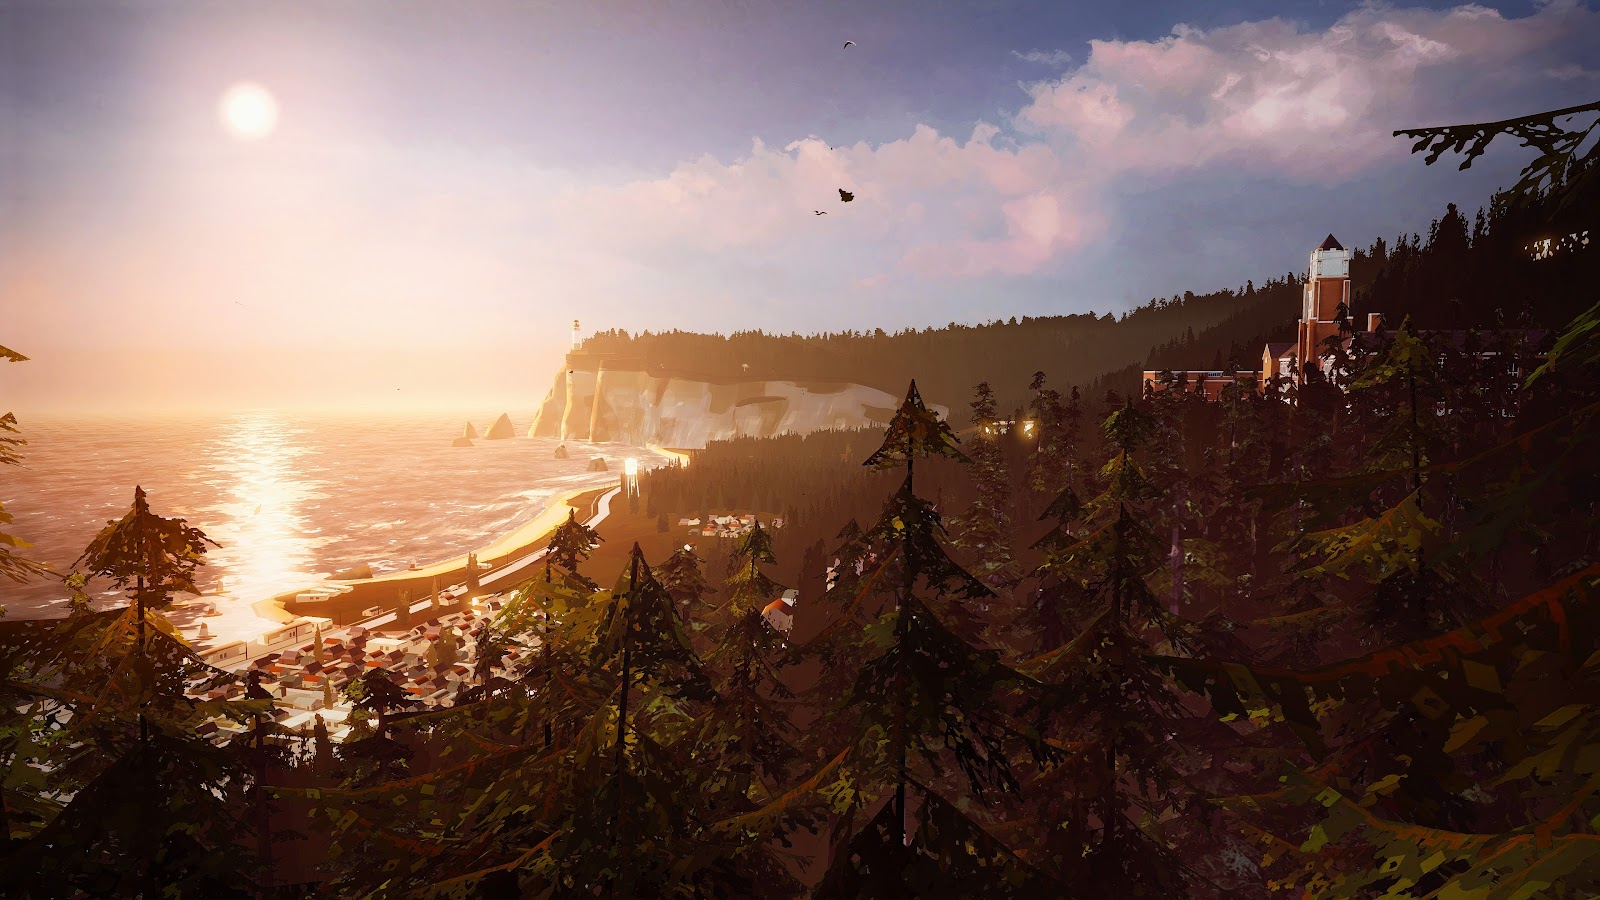 Life Is Strange 2 Wallpaper: Arcadia Bay Menu Backround 2160p No Title